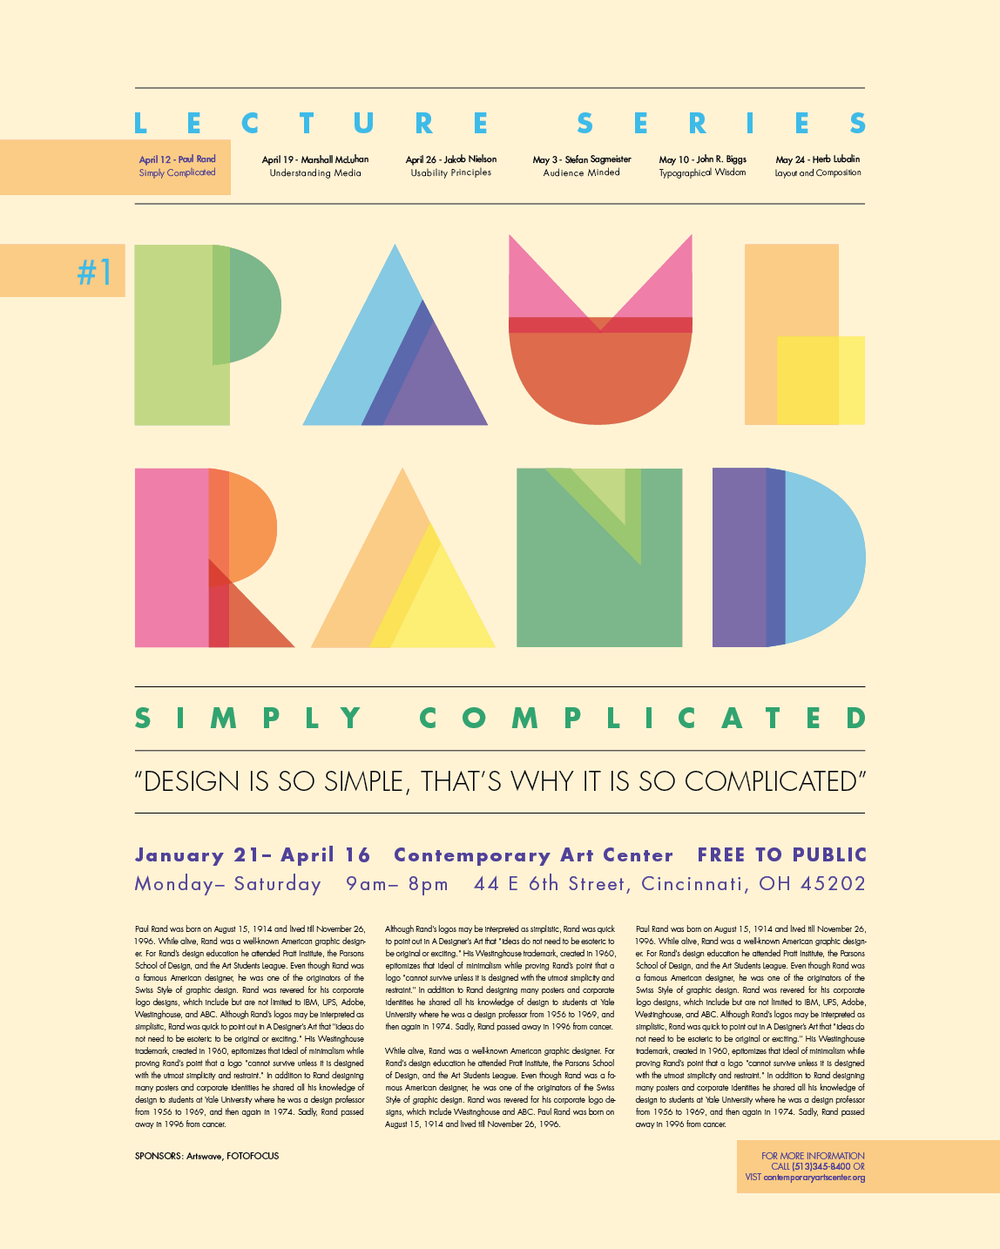 Free Resume Search Paul Rand Resume  Google Search  Clean Biz'  Pinterest